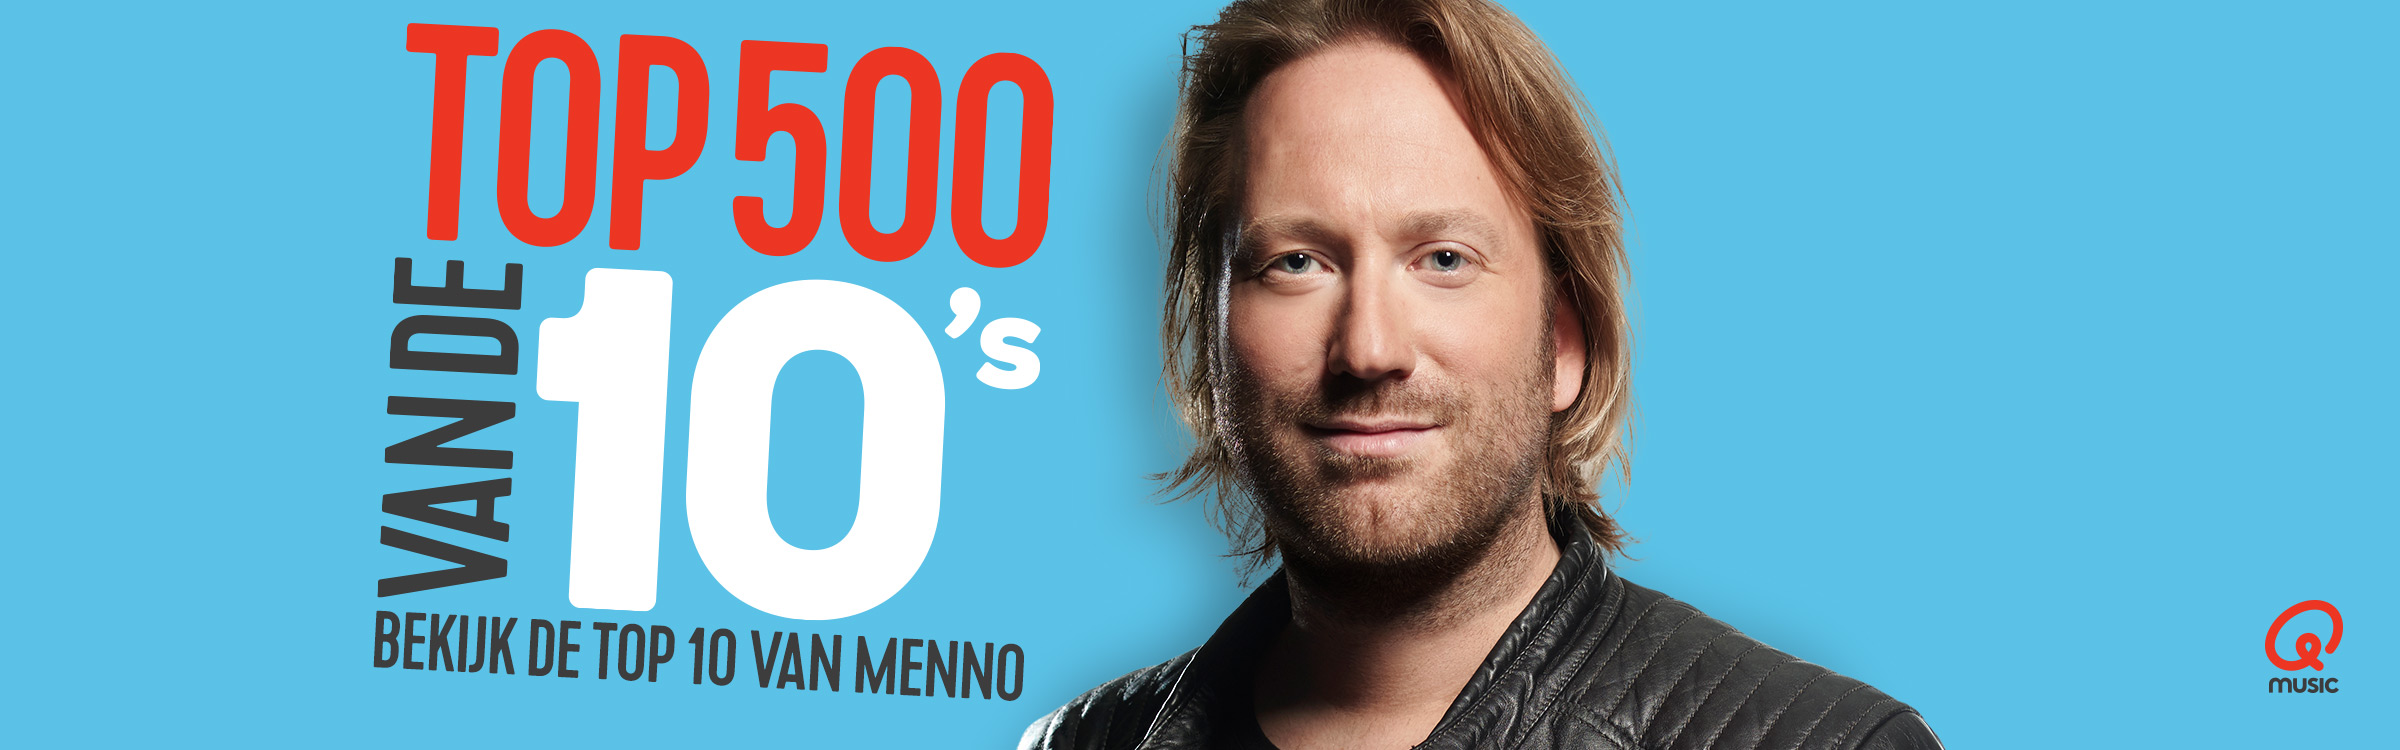 Qmusic actionheader 10s dj menno